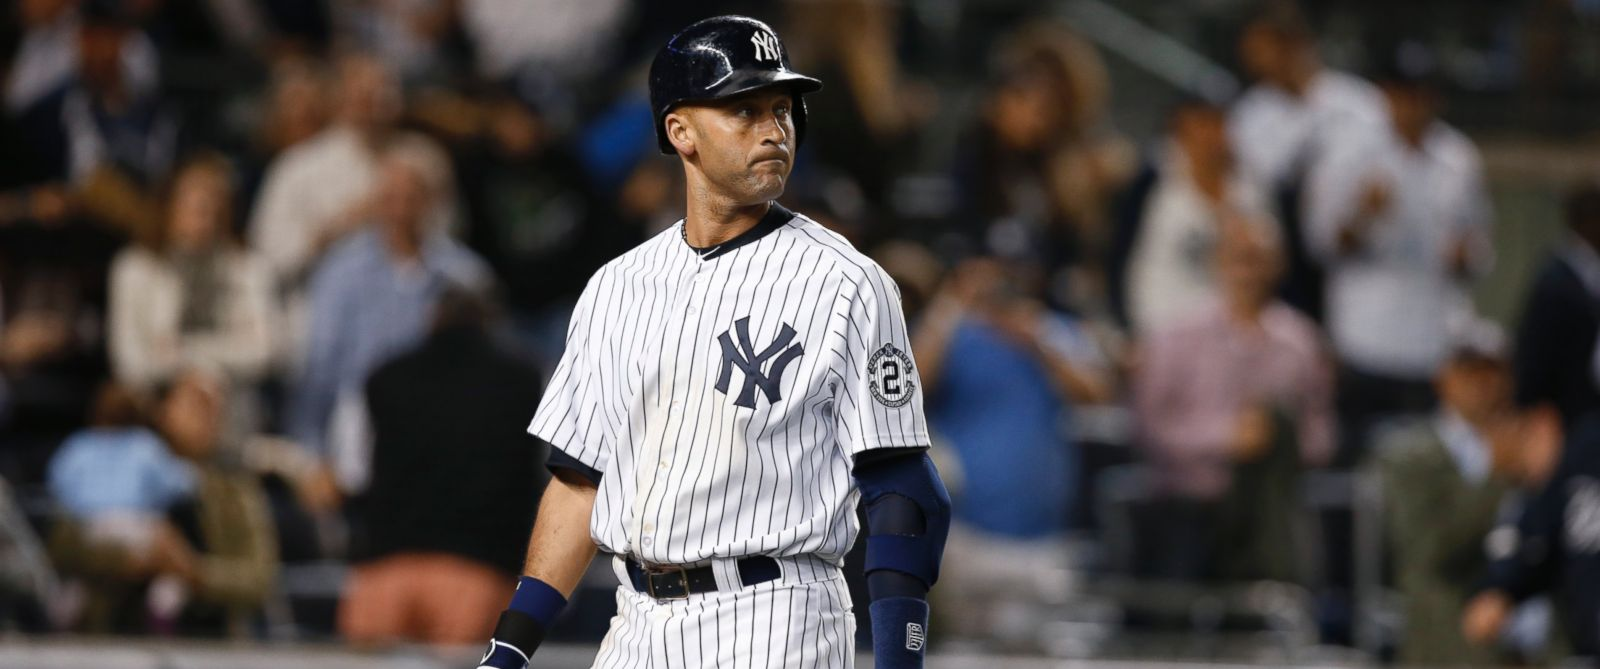 PHOTO: New York Yankees Derek Jeter reacts after striking out with Brett Gardner on first base in the ninth inning of the Yankees 5-4 loss to the Baltimore Orioles in a baseball game at Yankee Stadium in New York, Sept. 23, 2014.